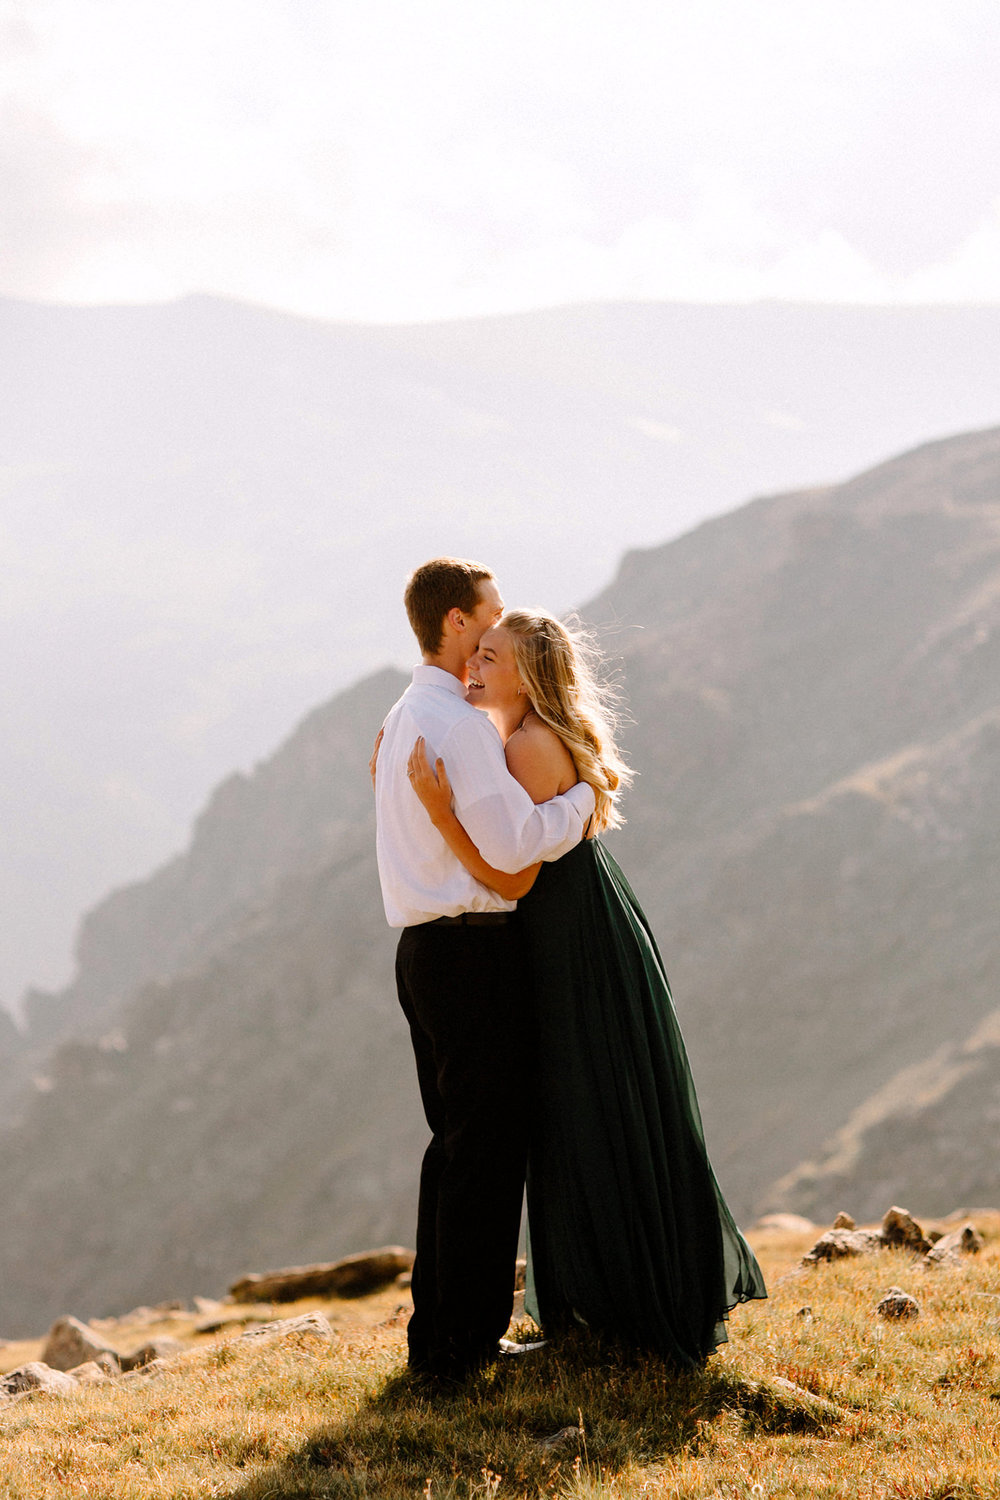 Rocky Mountain Engagement National Park Engaged Photos Wedding Elopement Portrait Mountains Trail Ridge Rd Peak Alpine Dress Lulus Rules Permit Photo Adventure Love Couples Destination Liz Osban photography Cheyenne Wyoming6.jpg